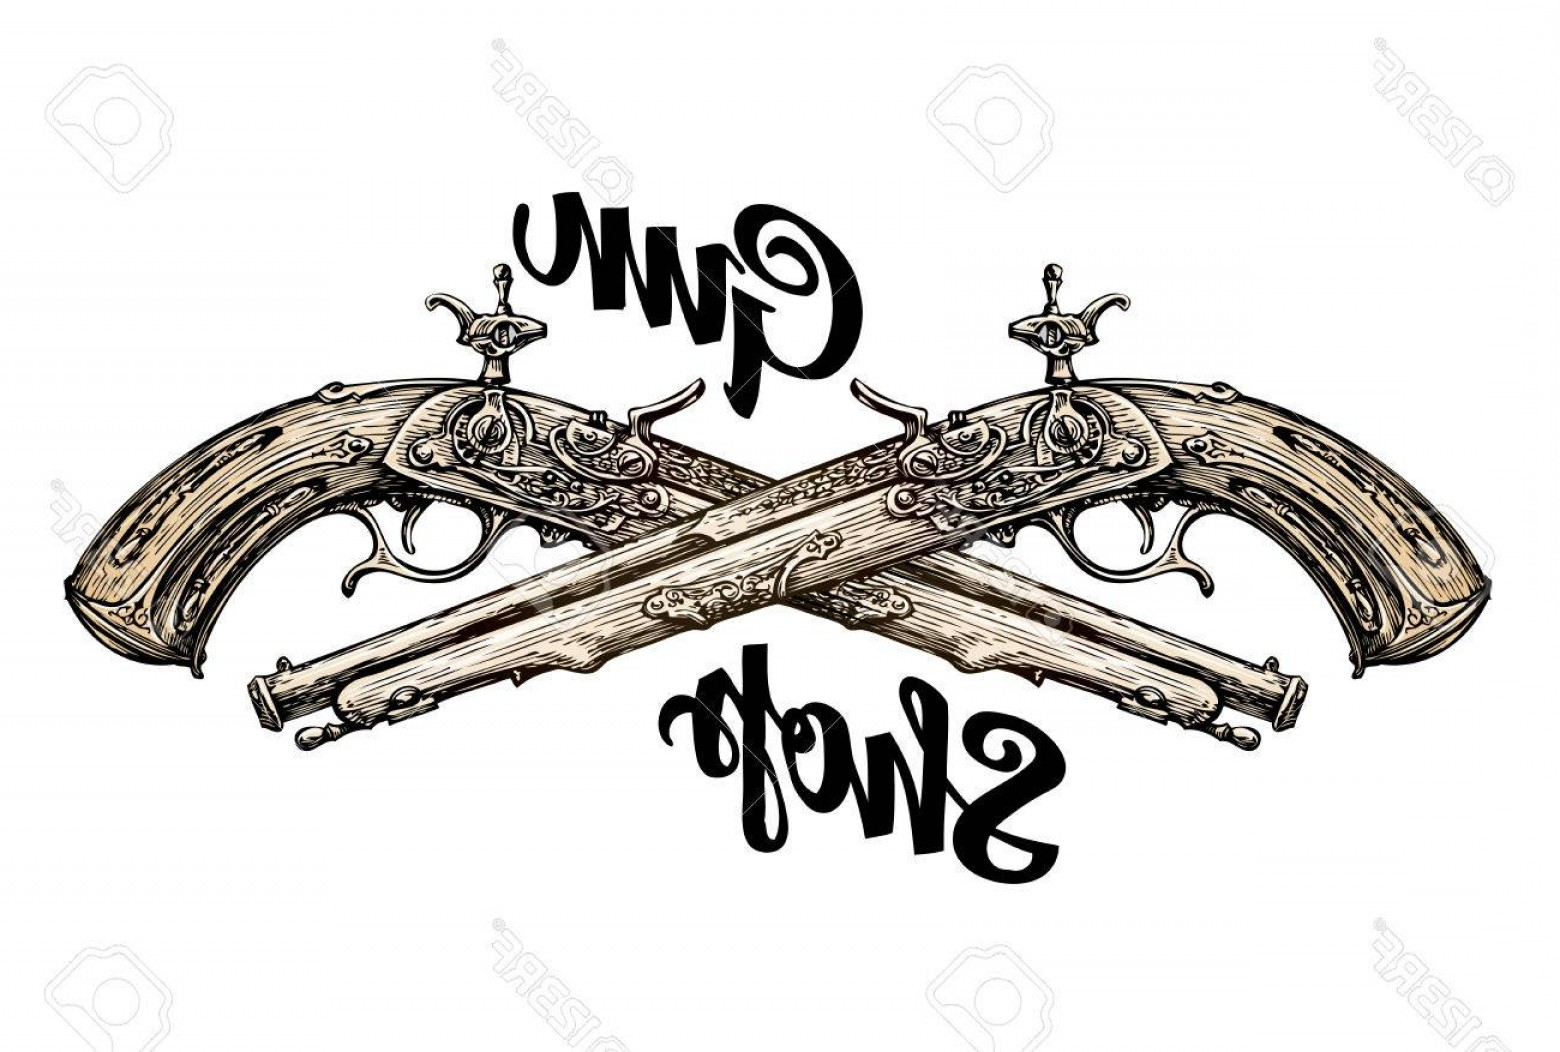 Vintage Crossed Pistols Vector: Photostock Vector Vintage Gun Crossed Pistols Hand Drawn Sketch Old Musket Vector Illustration